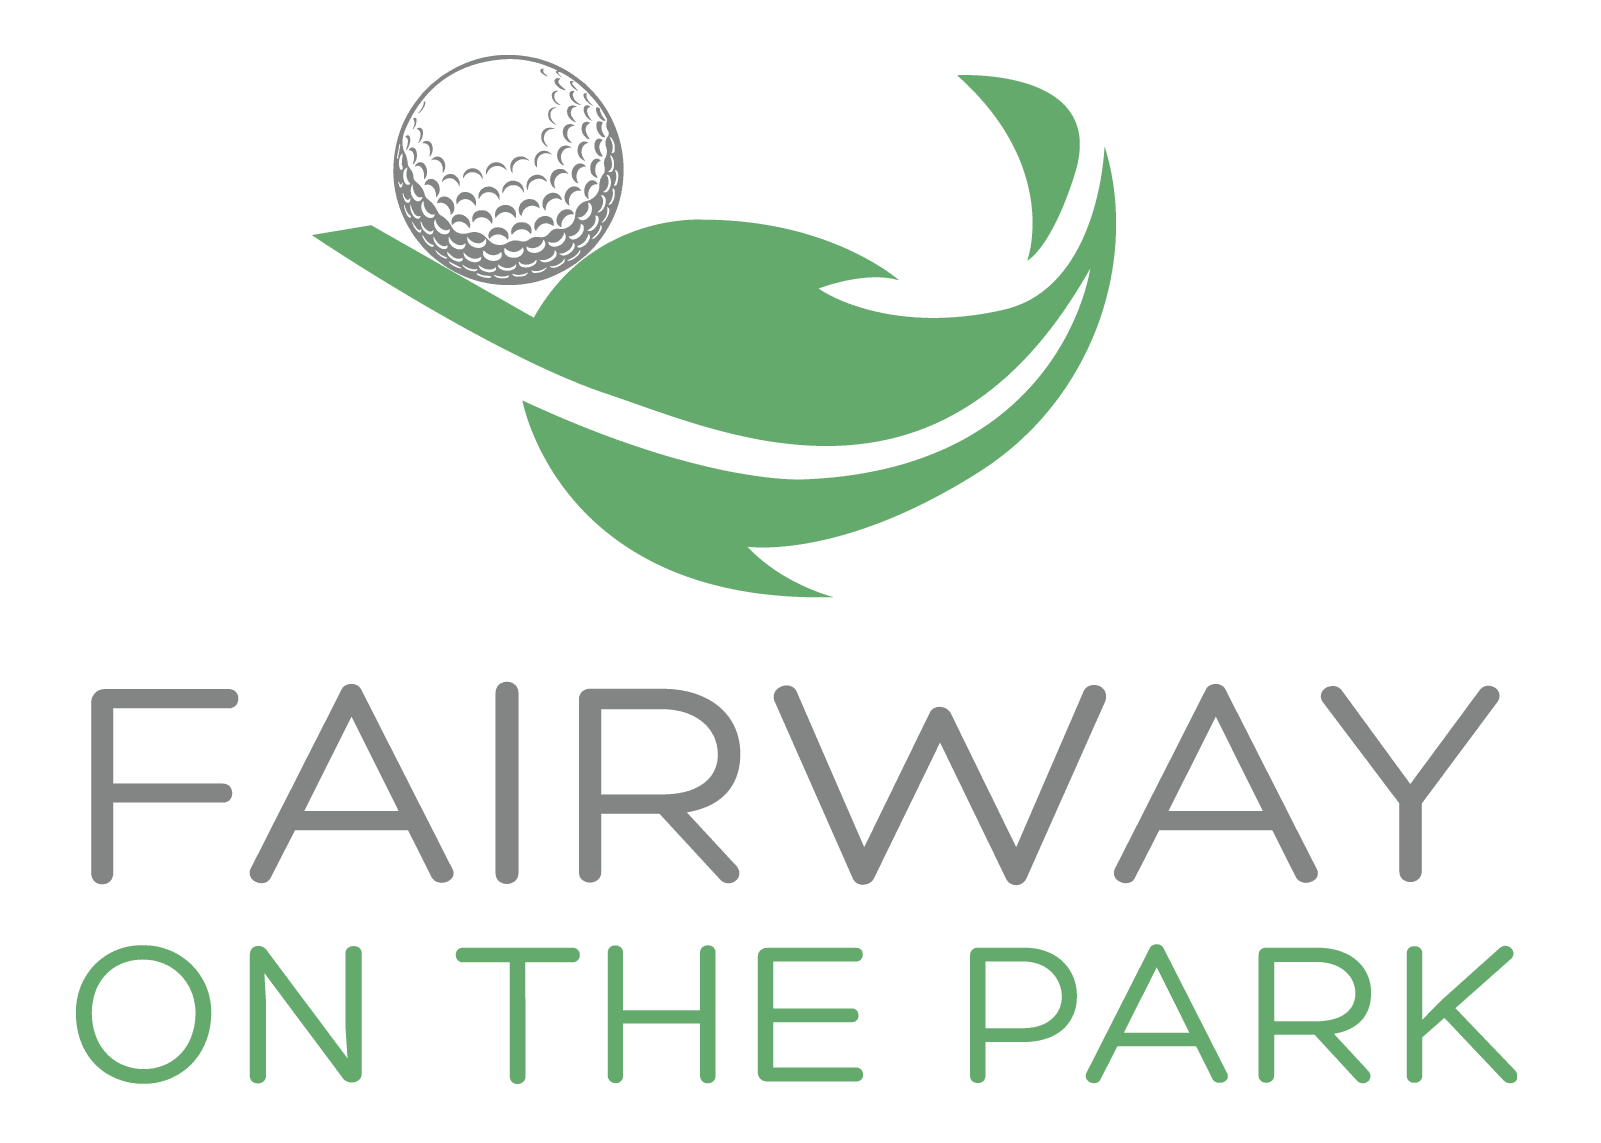 Fairway on the Park